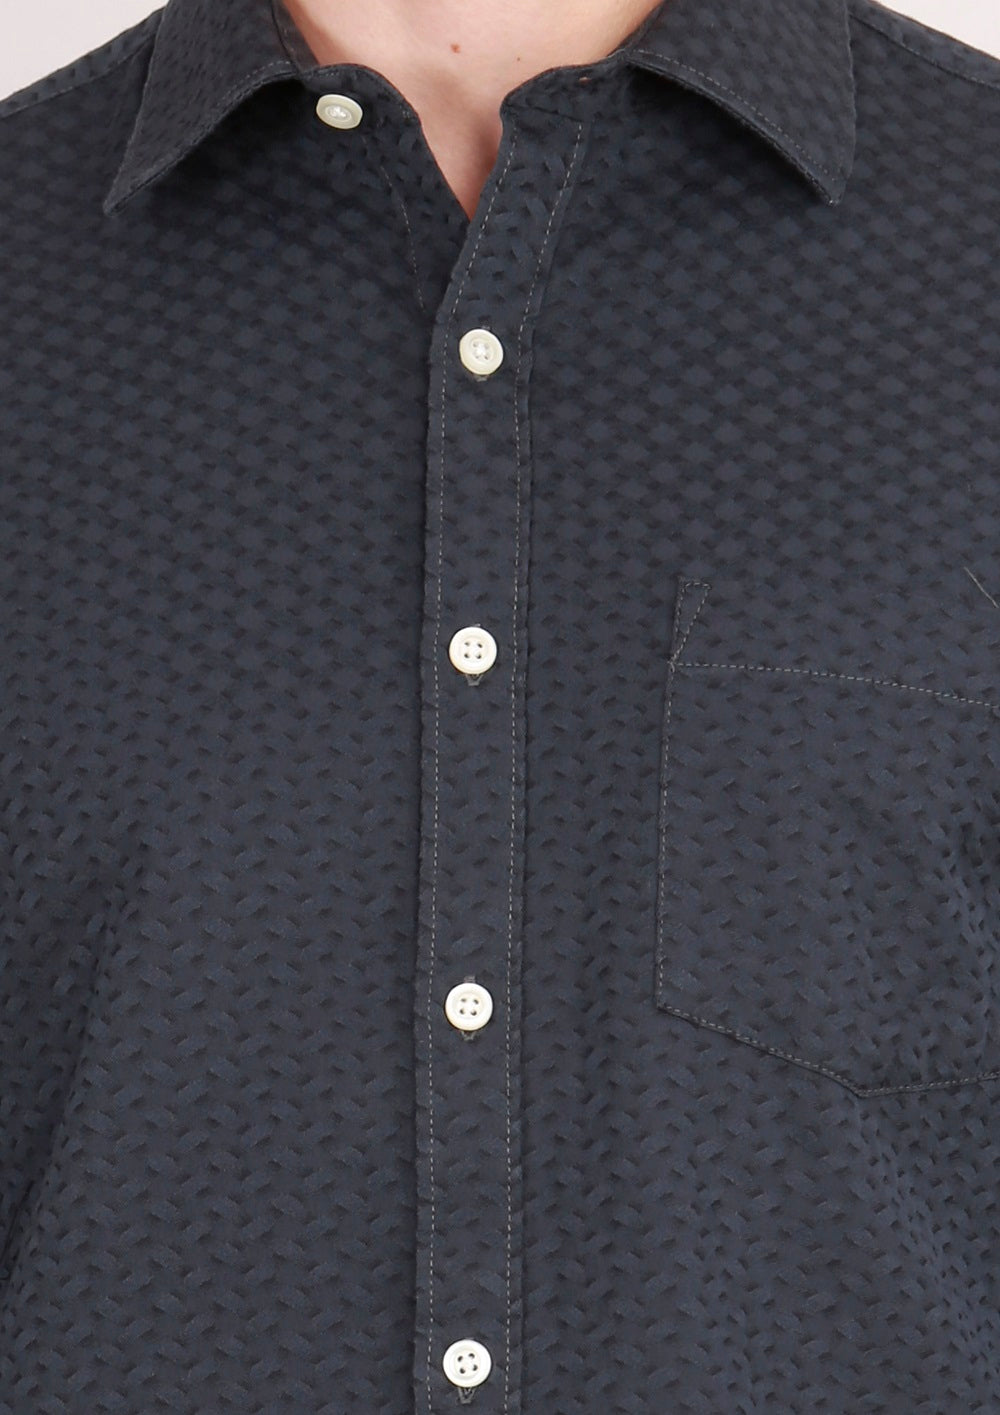 IMYOUNG Black Solid Slim Fit Casual Shirt